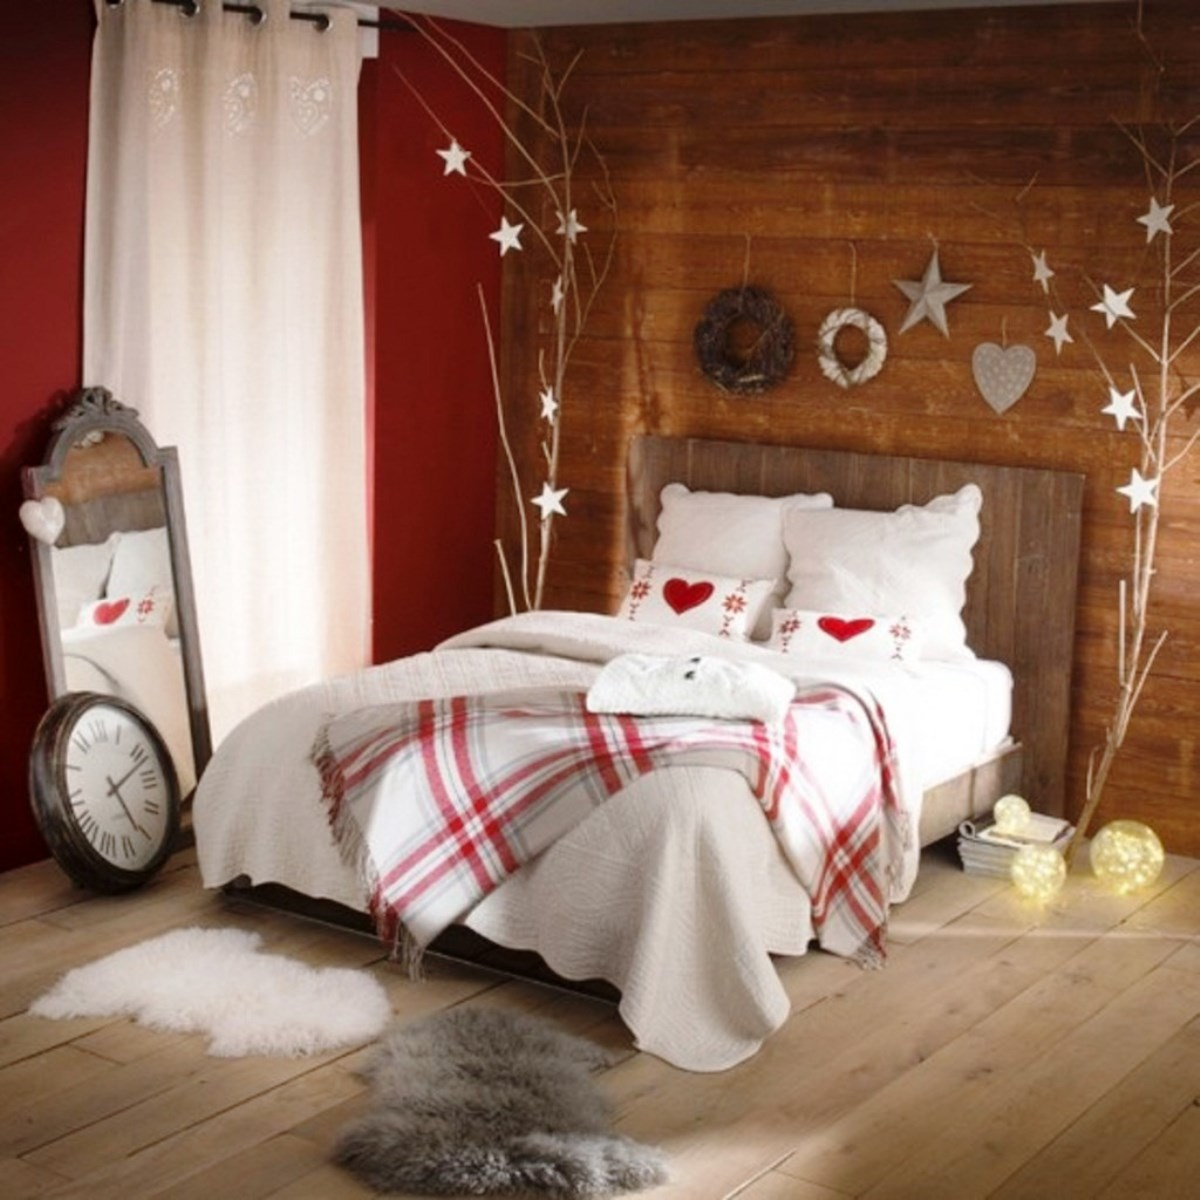 decoration ideas for bedroom 30 christmas bedroom decorations ideas 6157